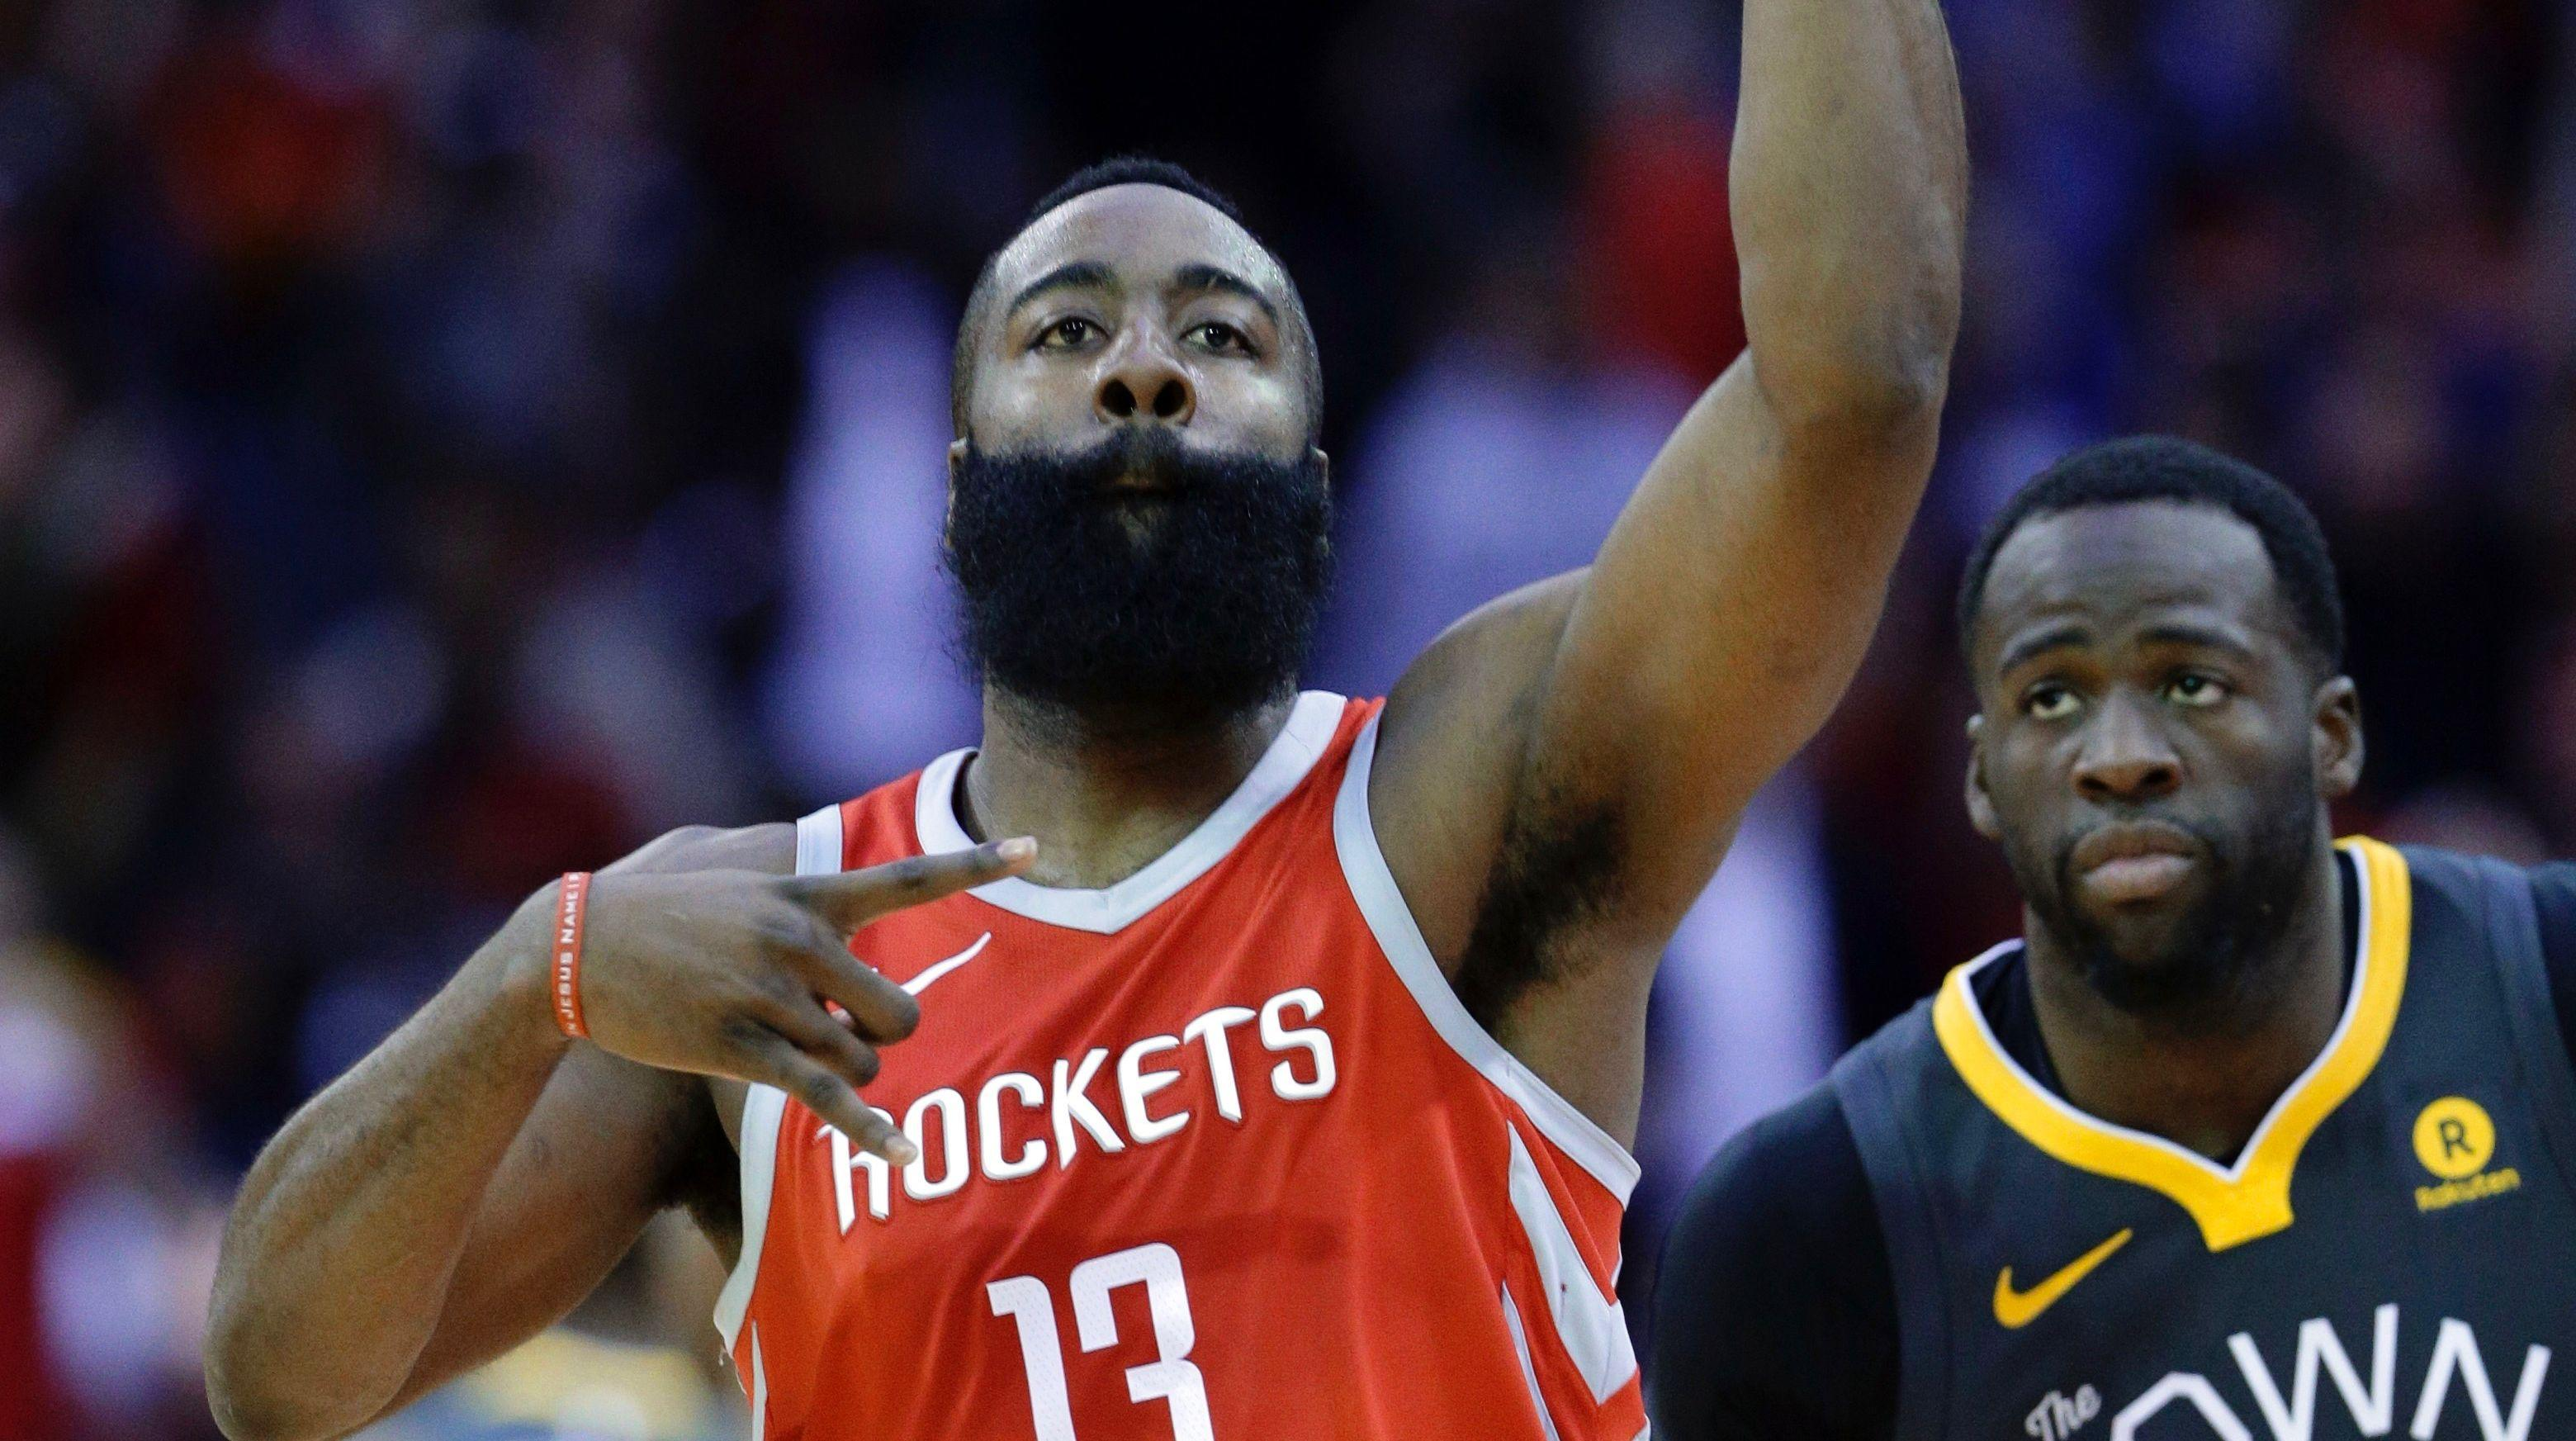 Rockets-Warriors continues to entertain ...